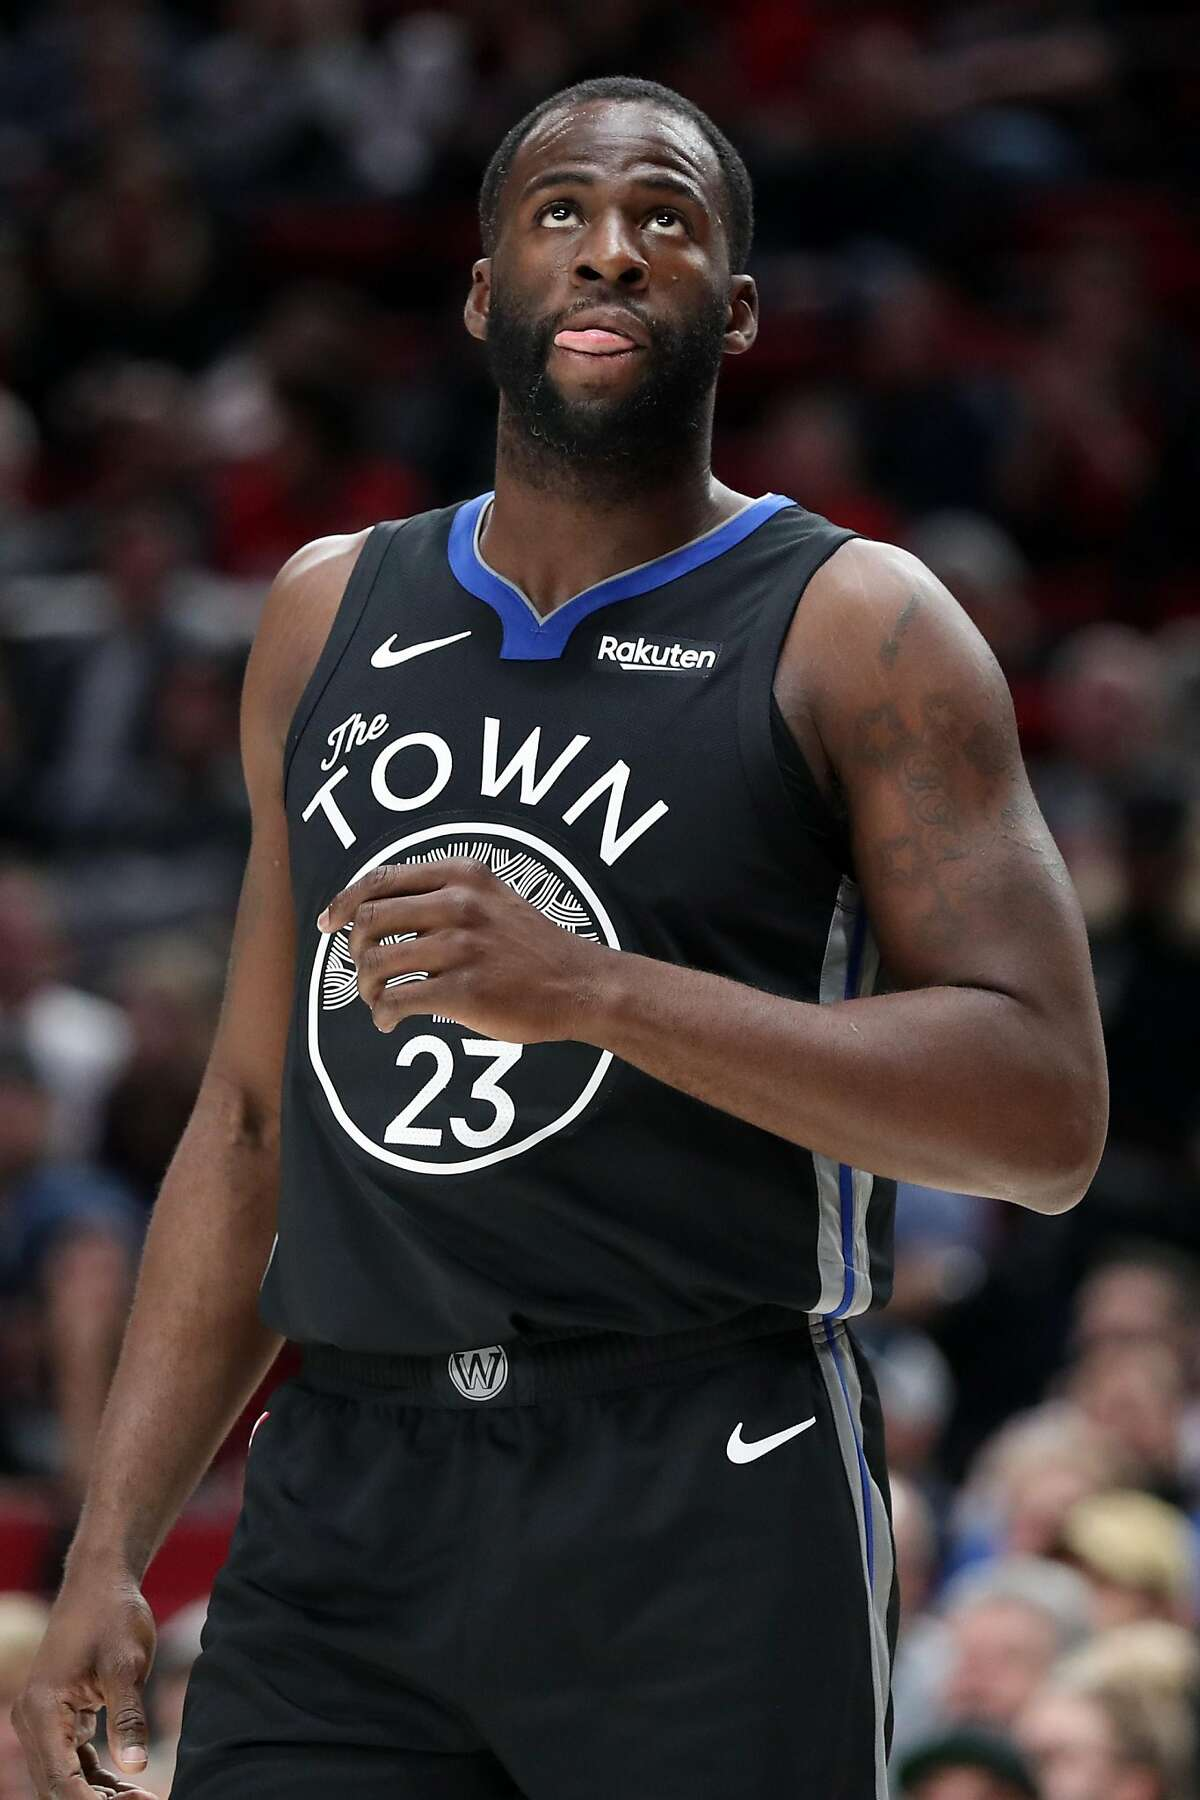 Draymond Green #23 of the Golden State Warriors reacts in the first quarter against the Portland Trail Blazers during their game at Moda Center on December 18, 2019 in Portland, Oregon.